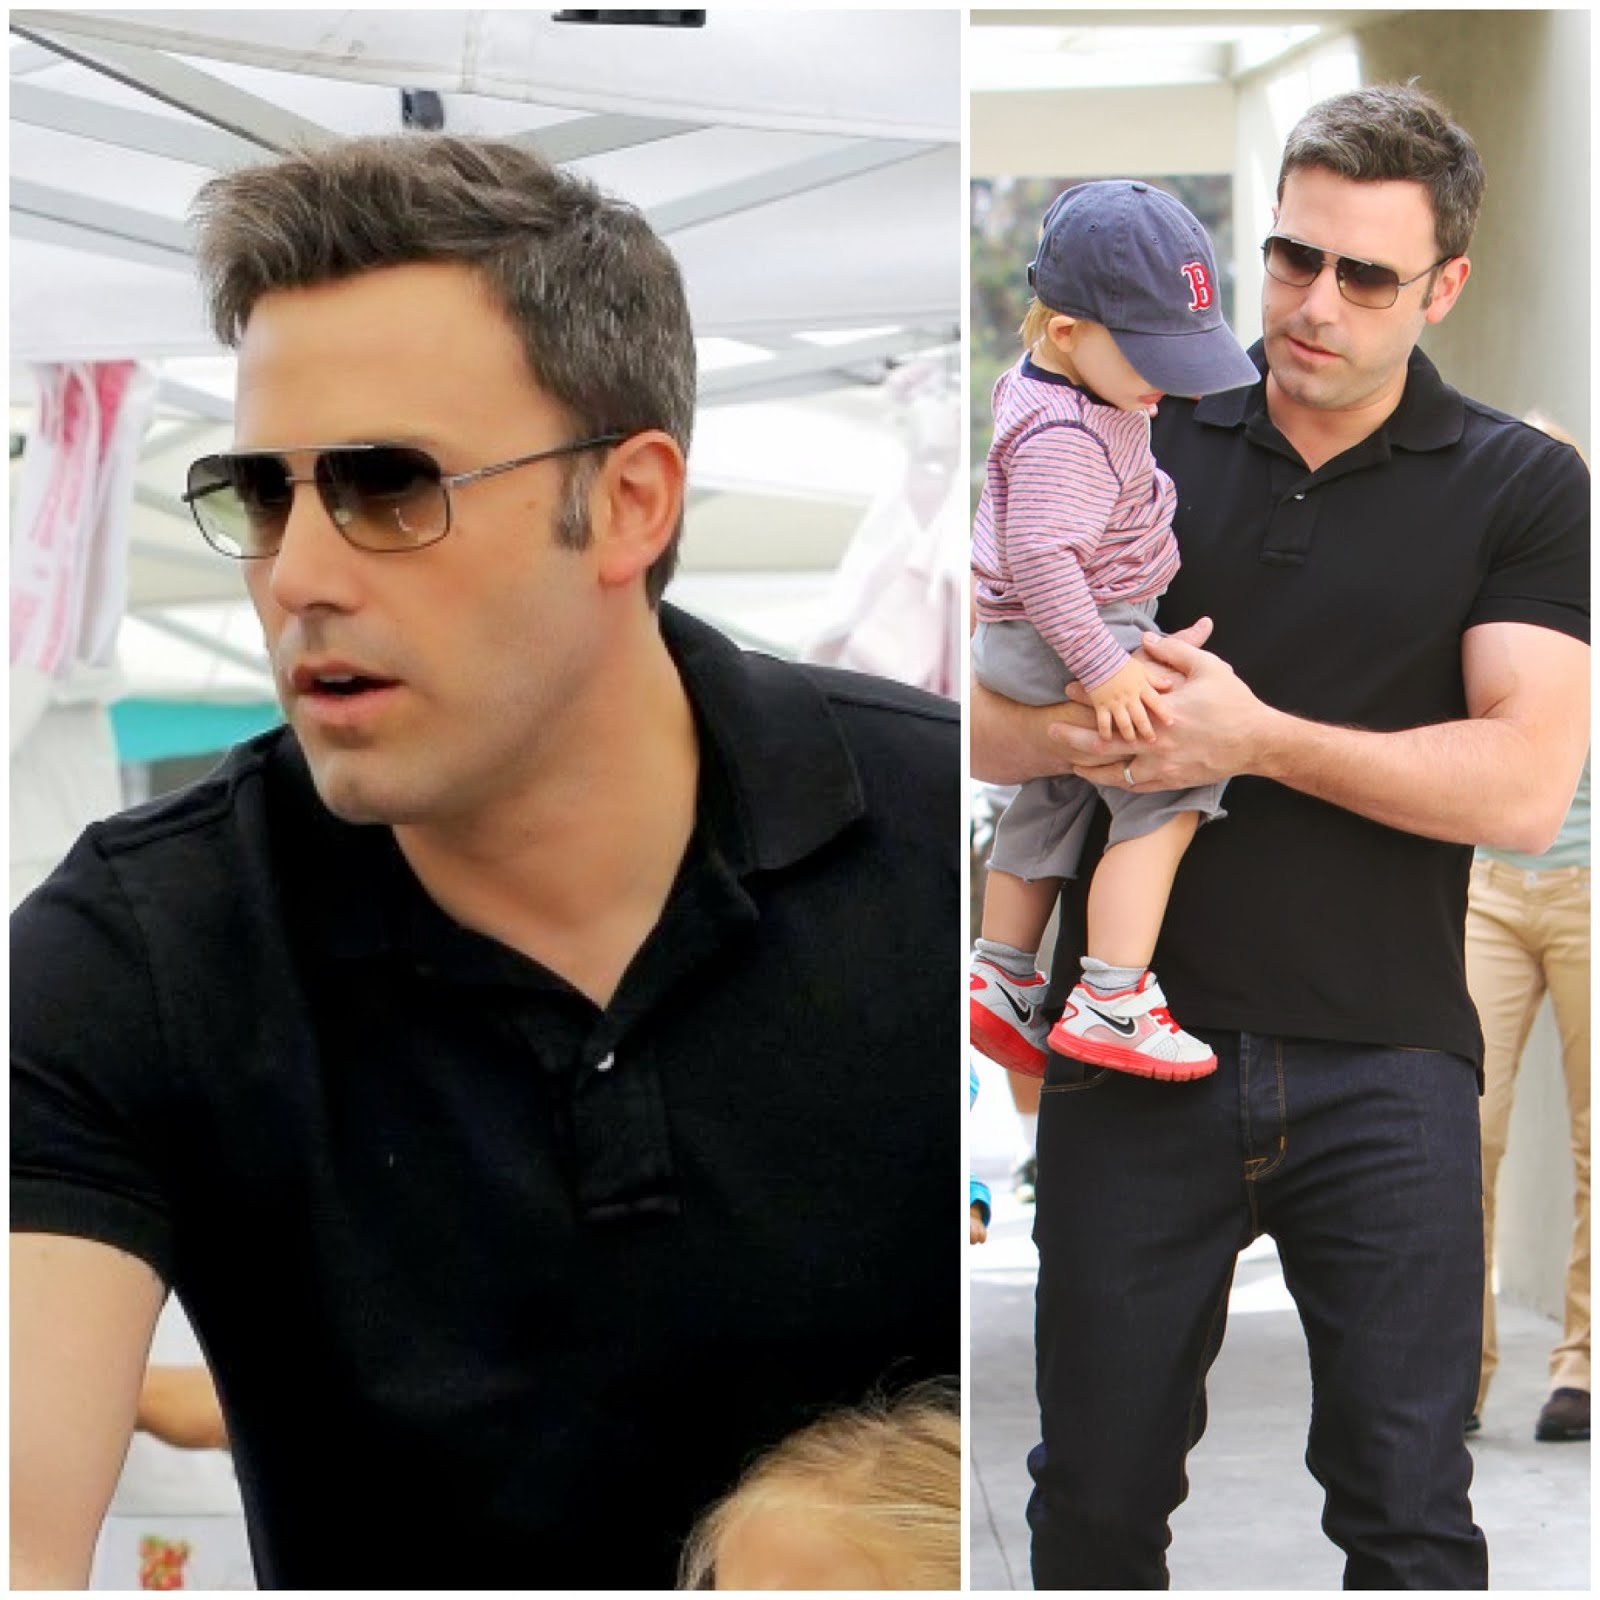 00O00 Menswear Blog http://00O00.blogspot.com Ben Affleck's Dita Baron sunglasses Farmers Market in Pacific Palisades, Los Angeles August 2013